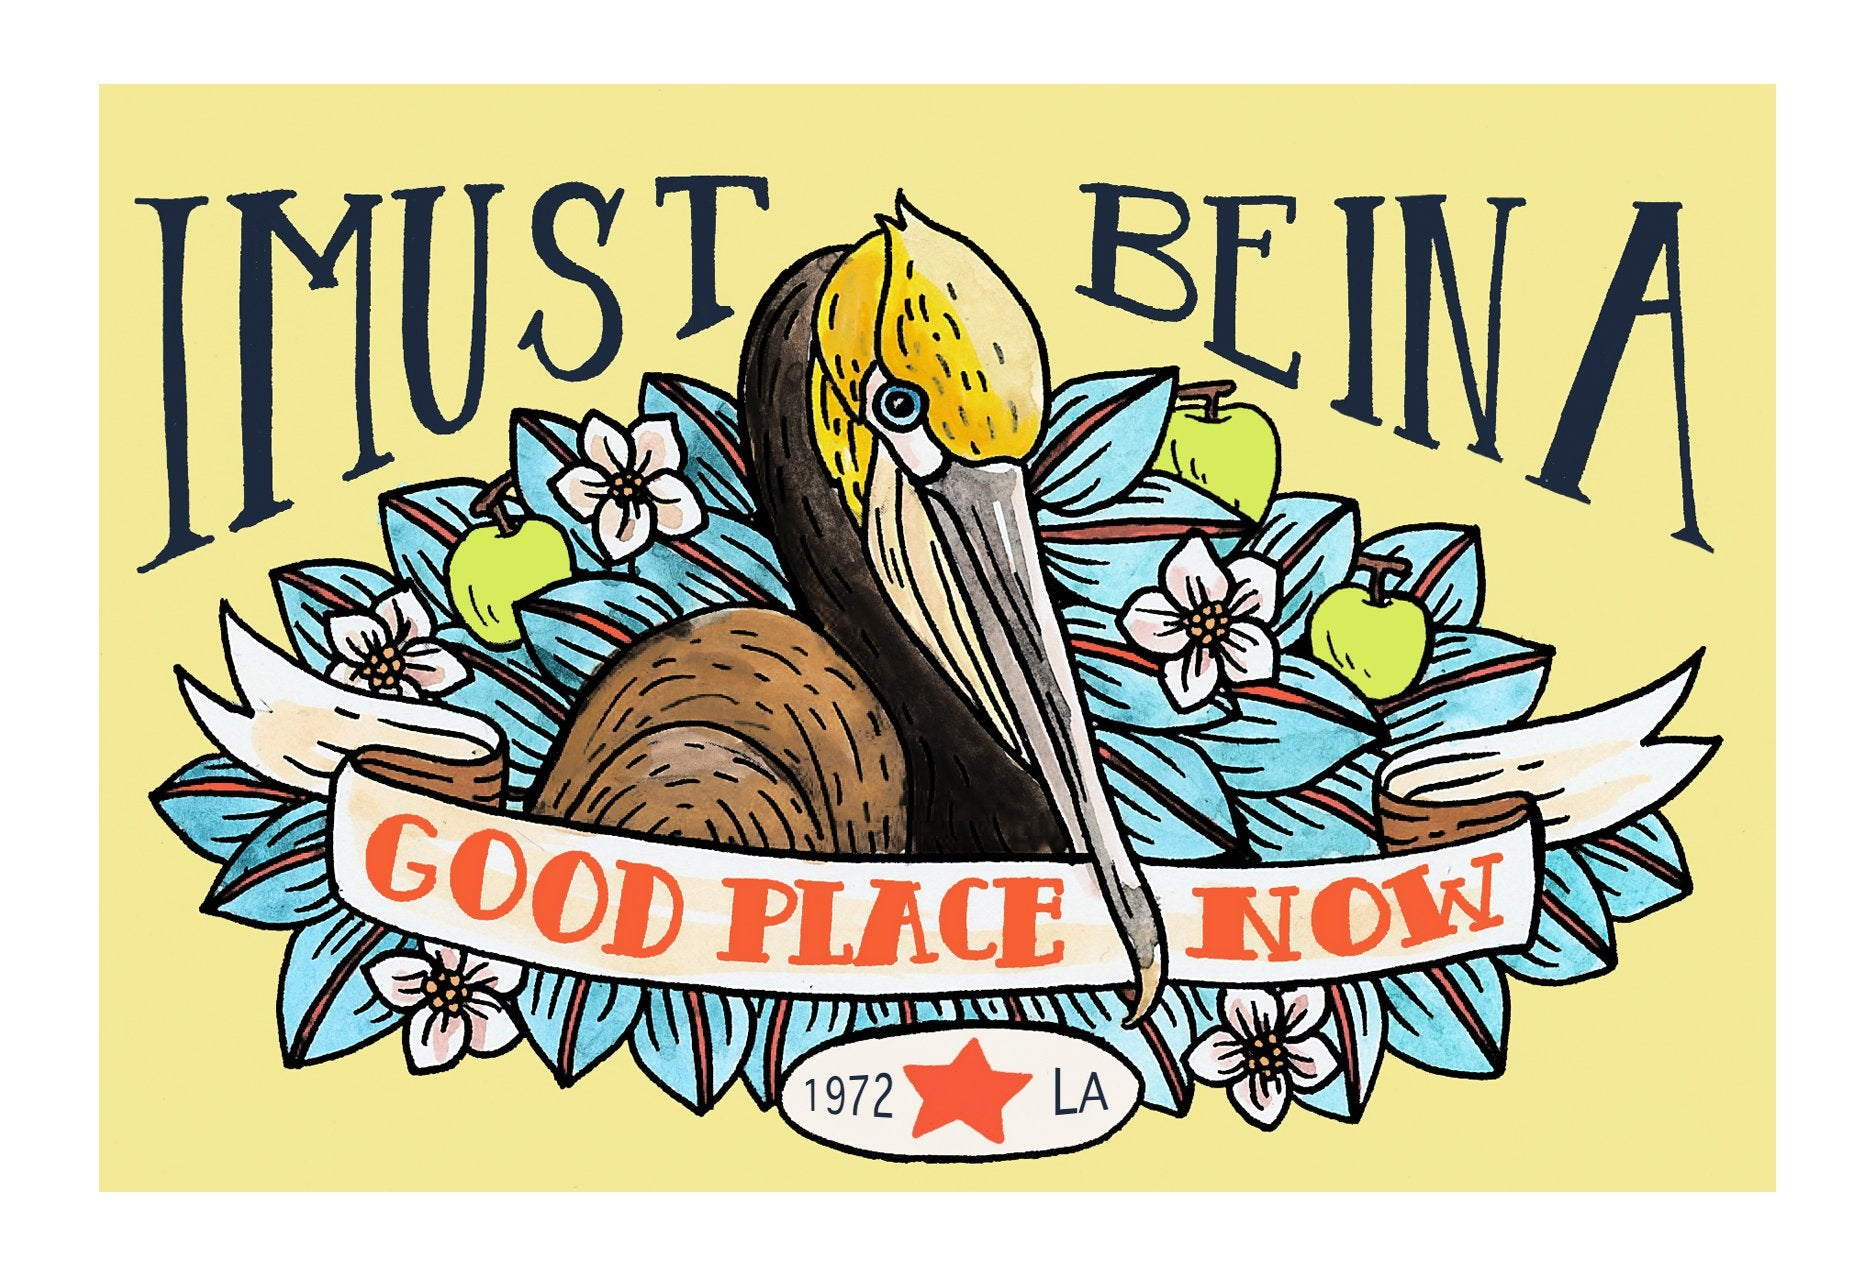 I Must Be In A Good Place Now Postcard 4x6